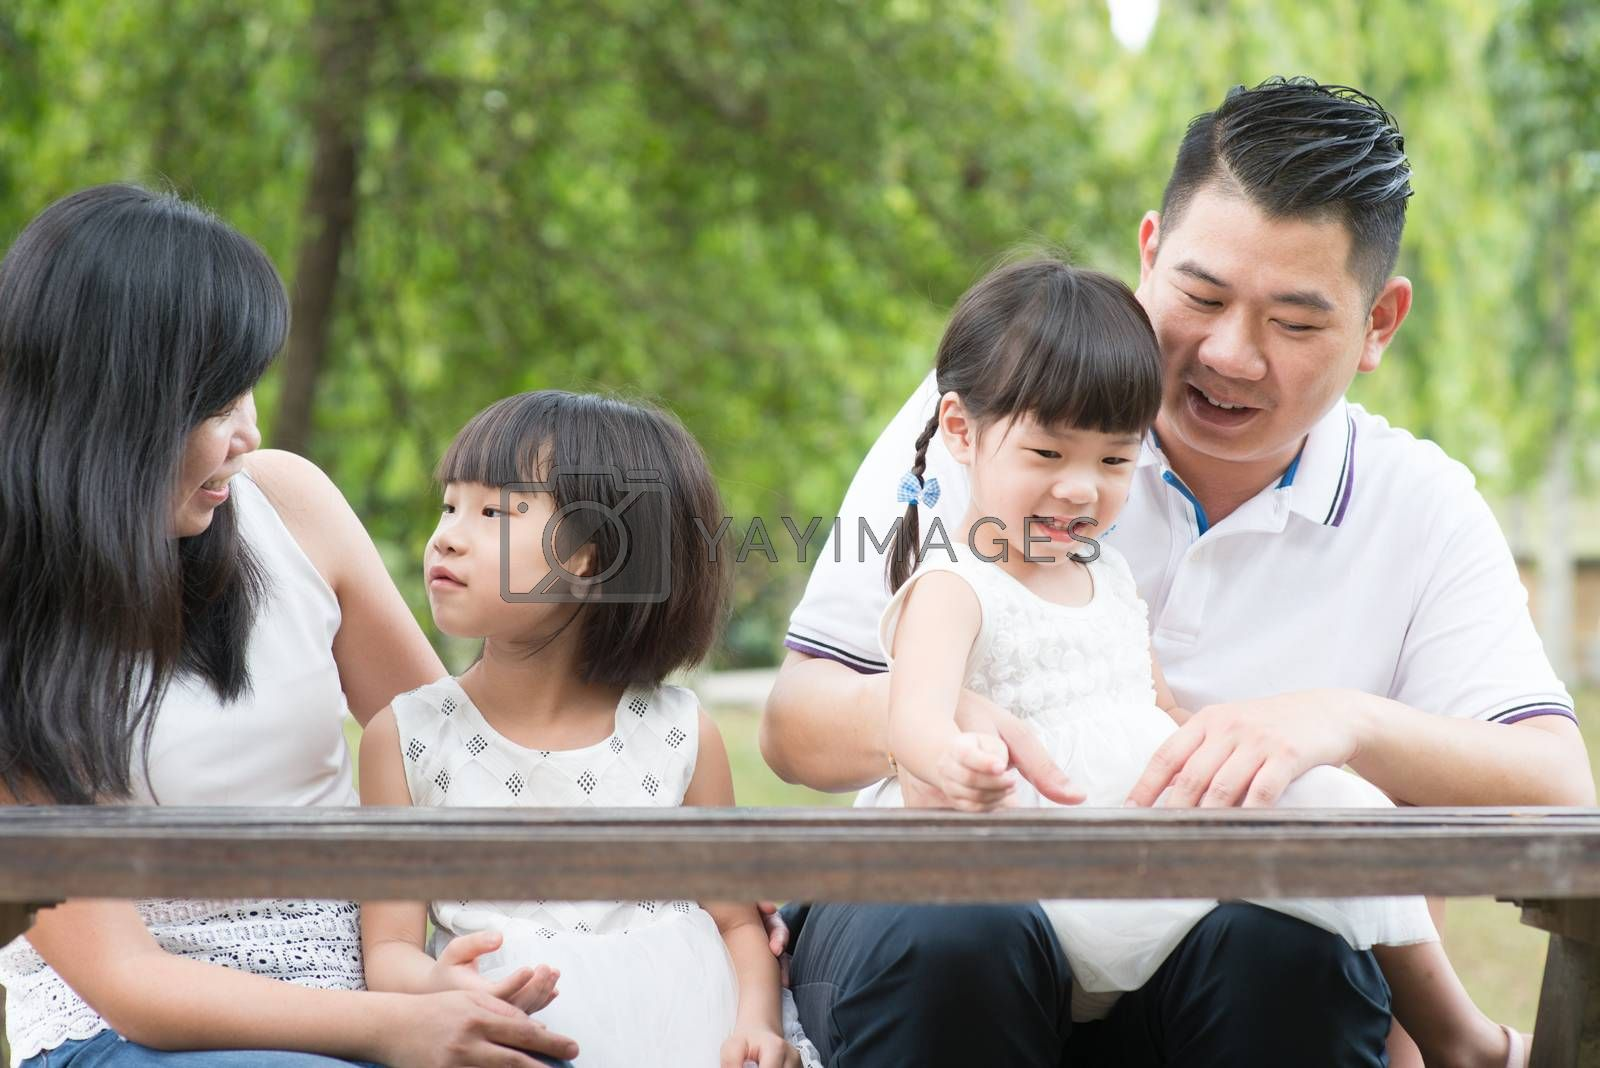 Asian family. Parents and children having fun at outdoor park. Empty space on wooden table.